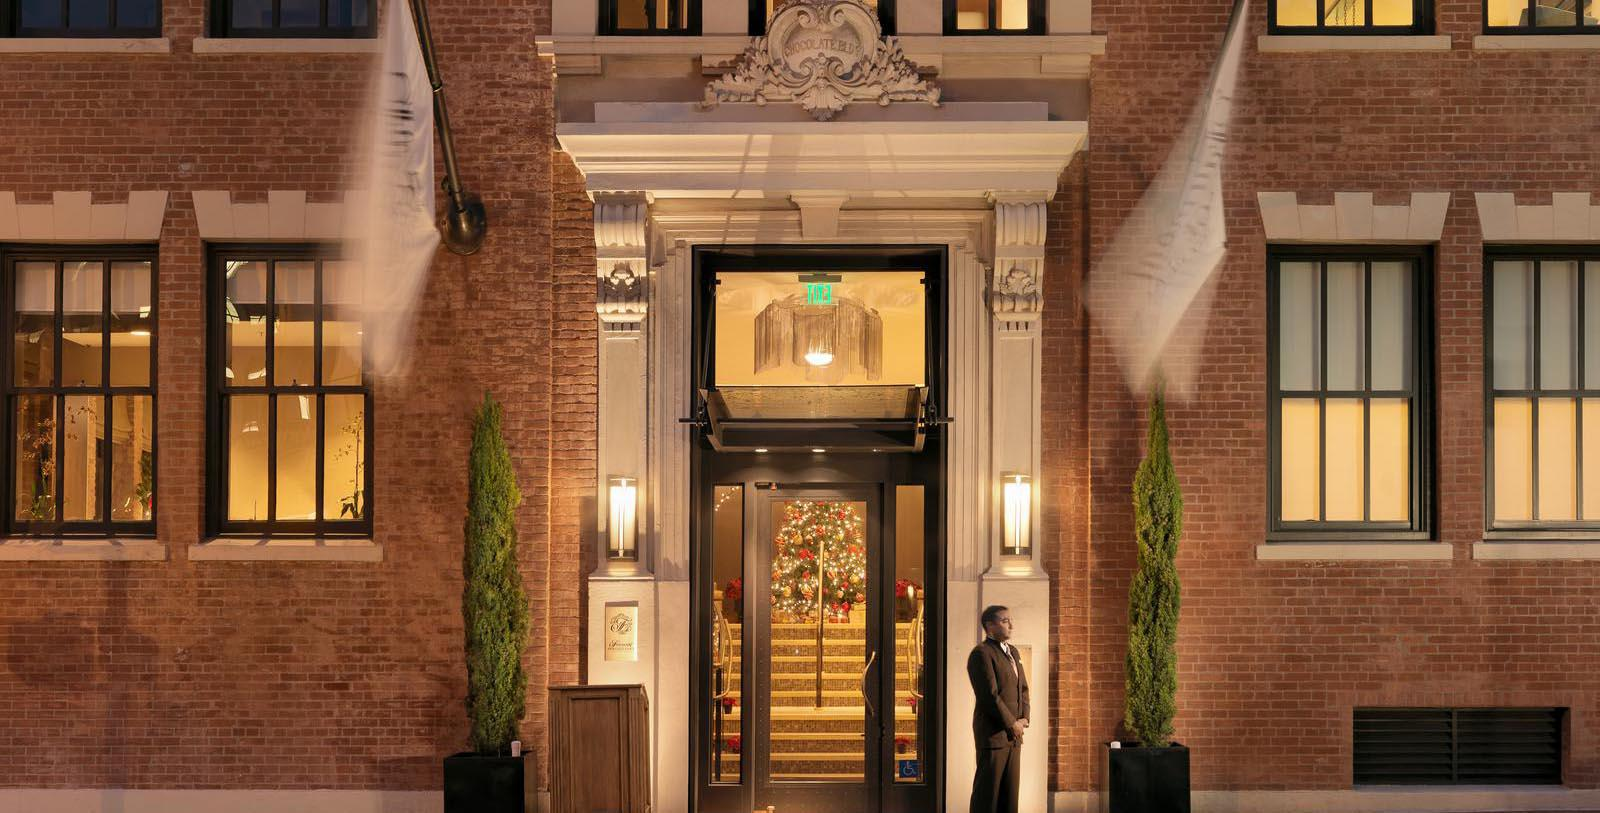 Image of hotel entrance at Fairmont Heritage Place, Ghirardelli Square, 1893, Member of Historic Hotels of America, in San Francisco, California, Overview